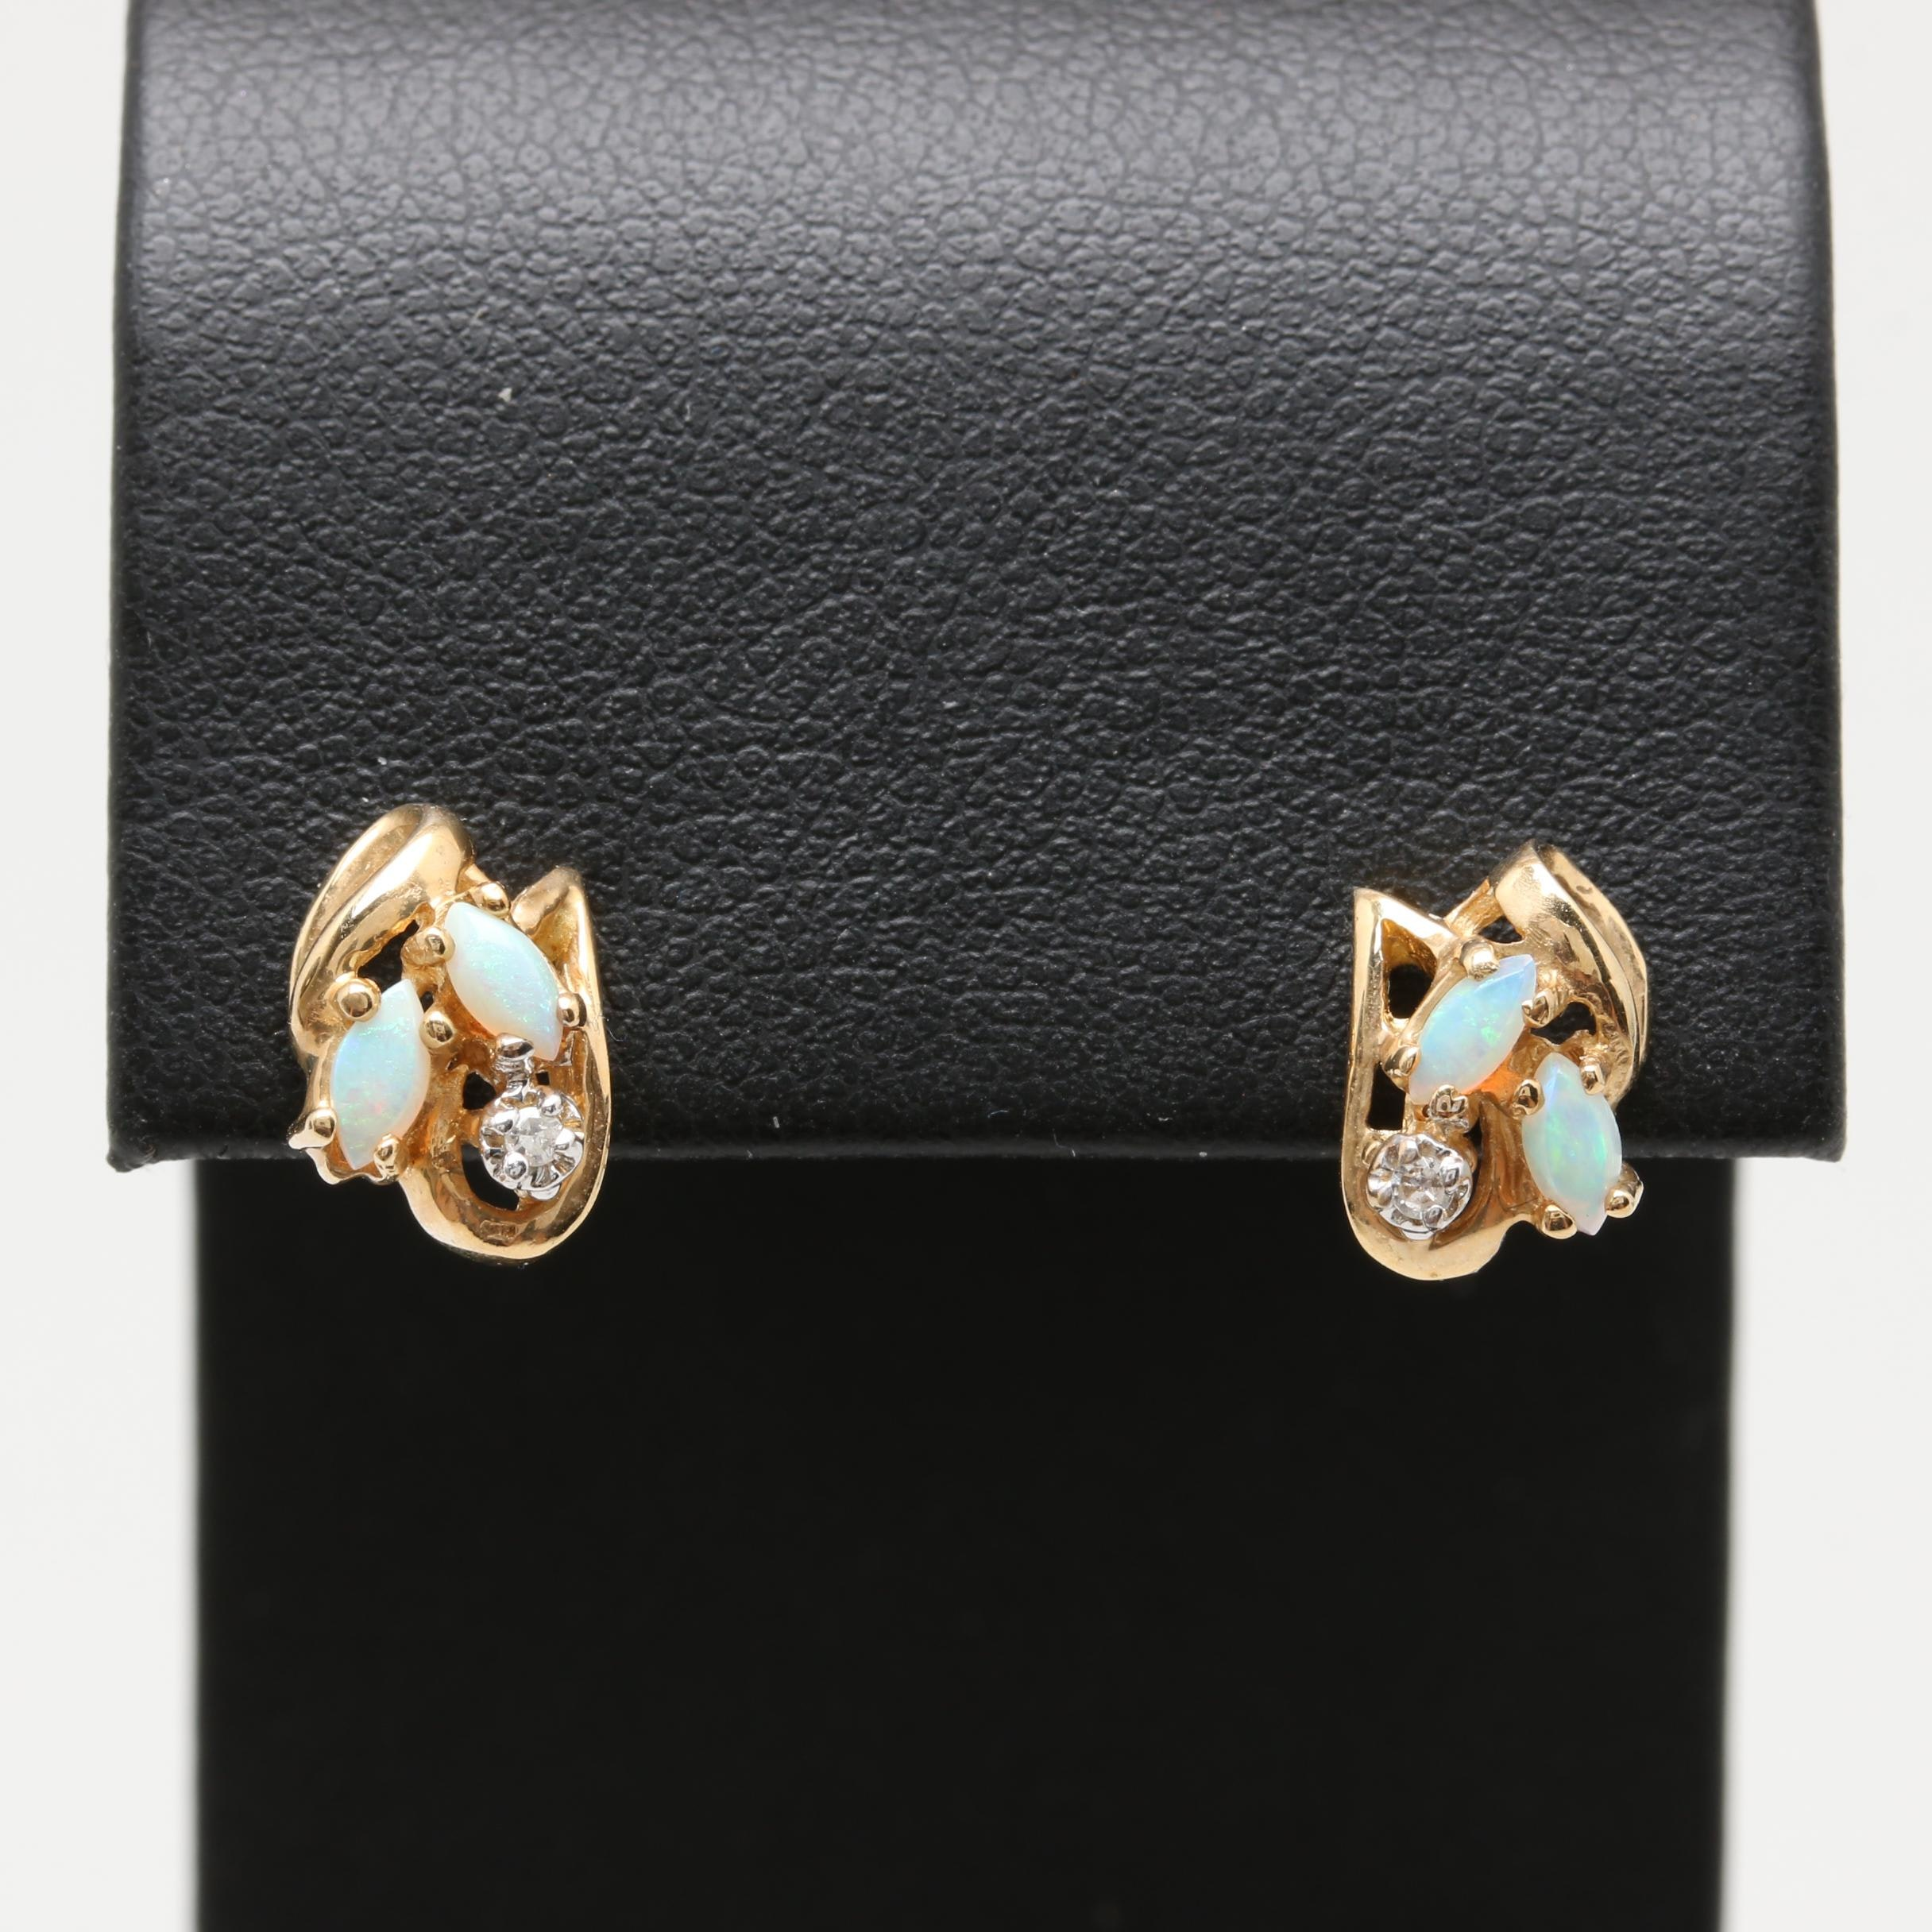 10K and 14K Yellow Gold Diamond and Opal Earrings